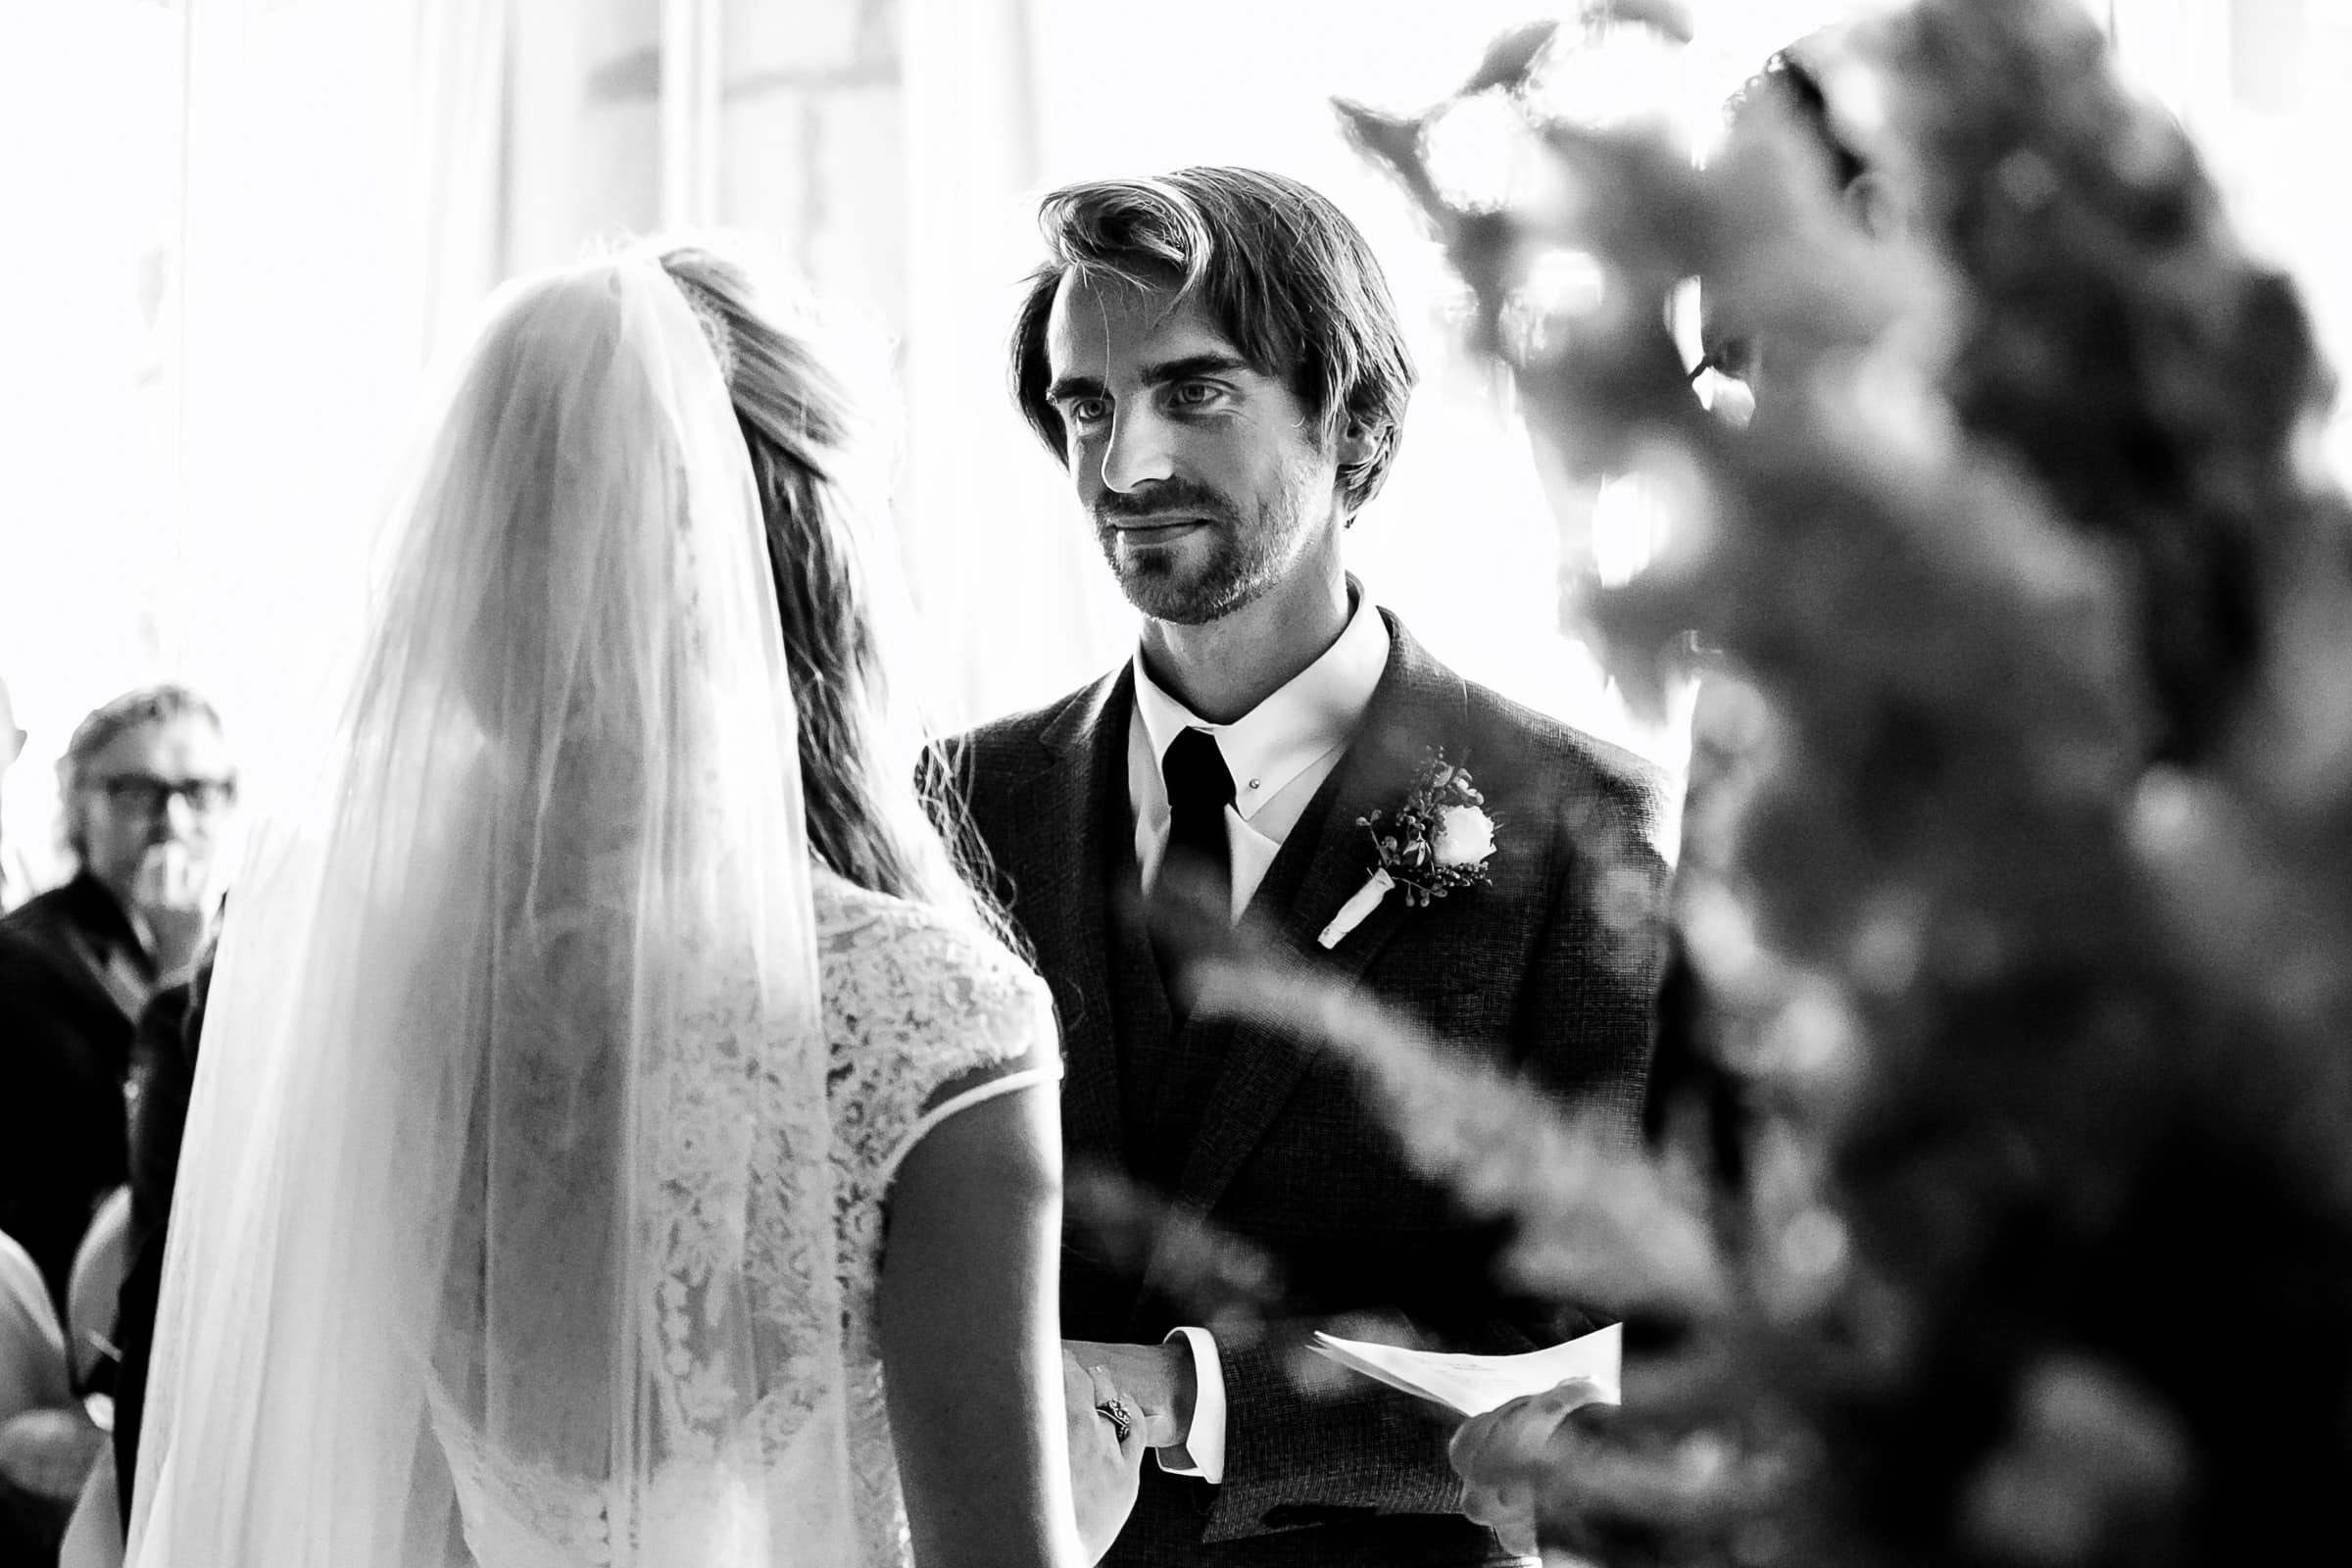 Groom exchanging vows during a French Chateau wedding in Normandy, France